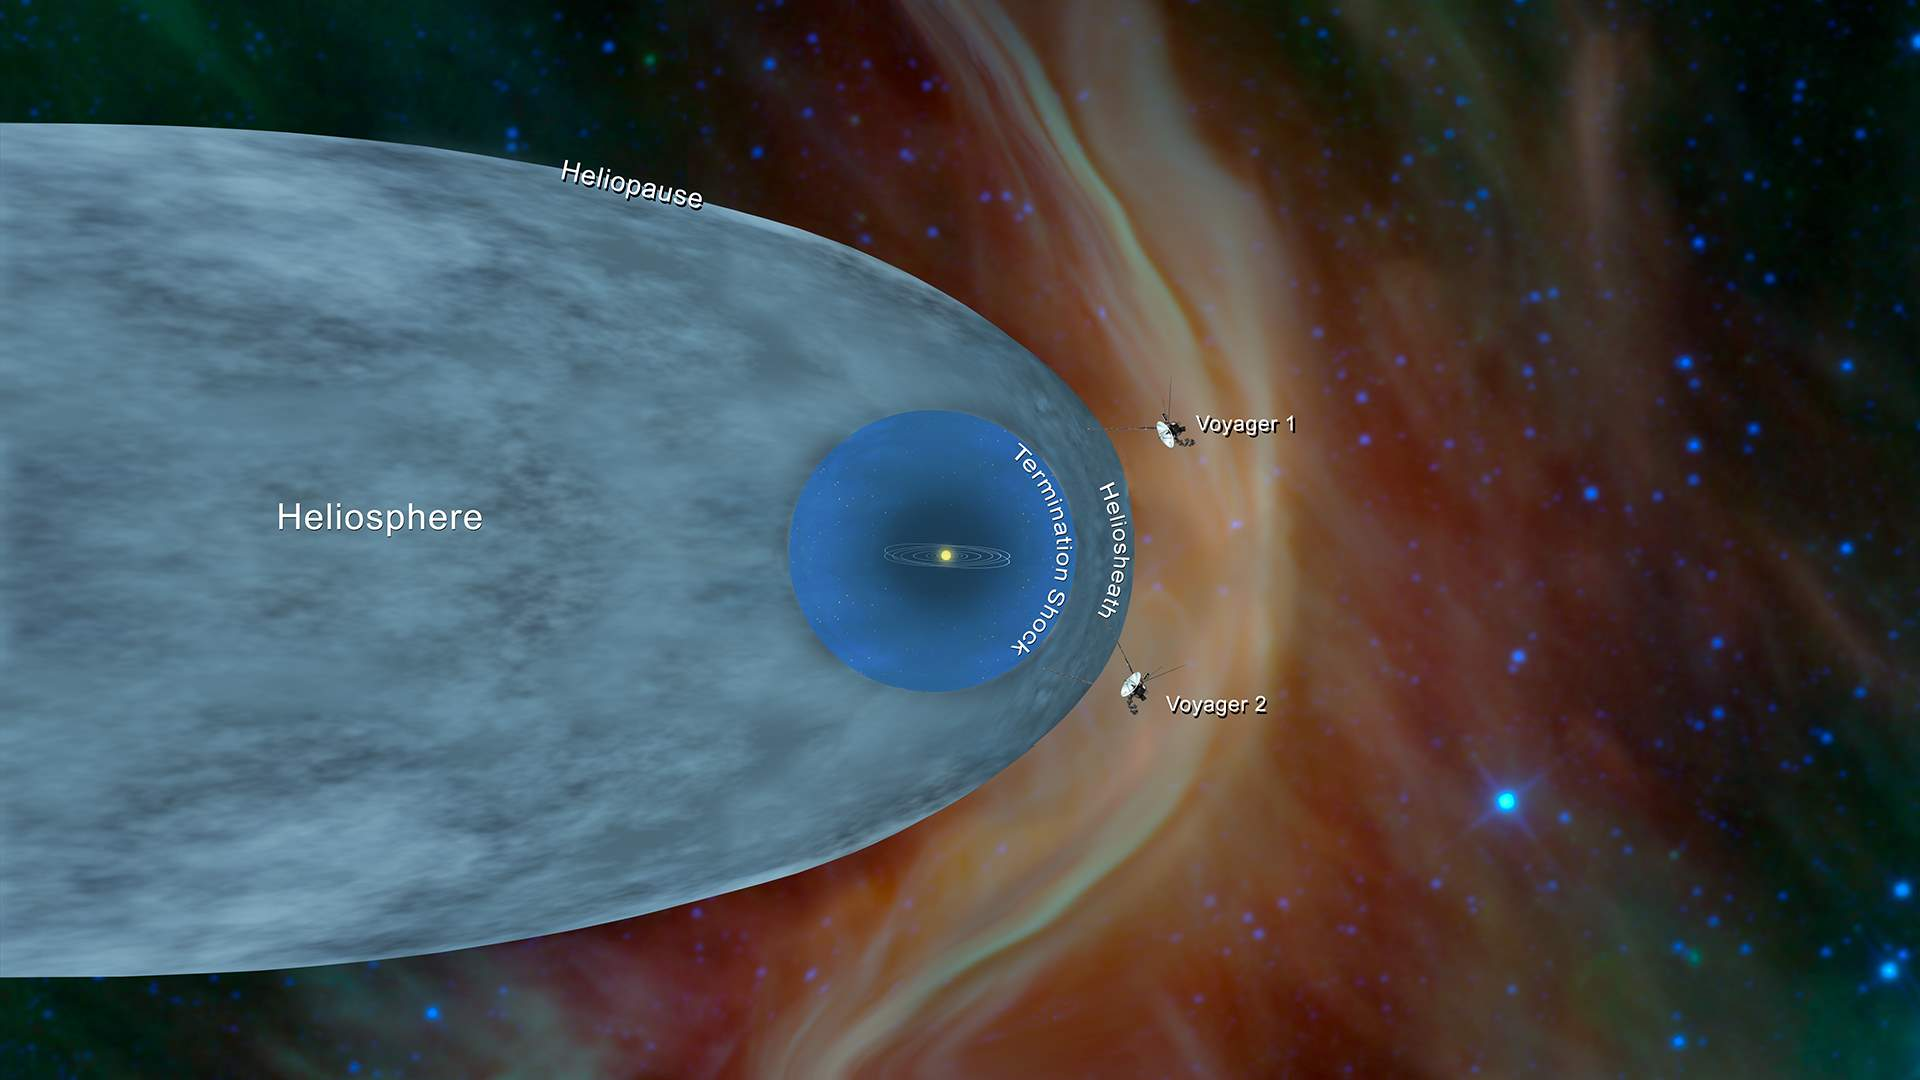 Heliosphere and Voyagers